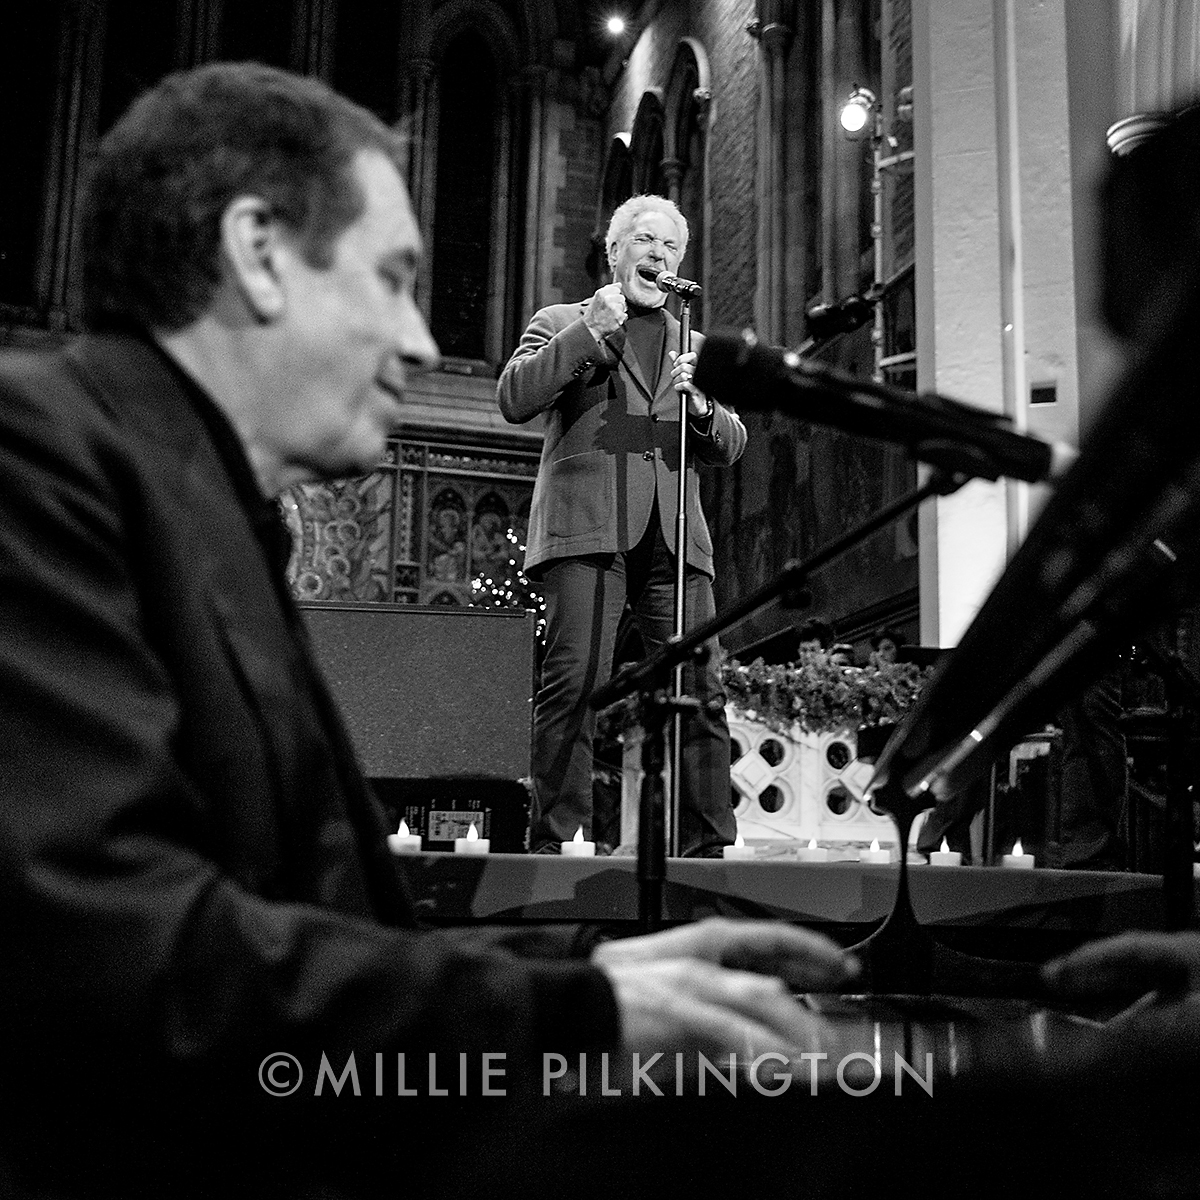 Sir Tom Jones Jools Holland portrait photography